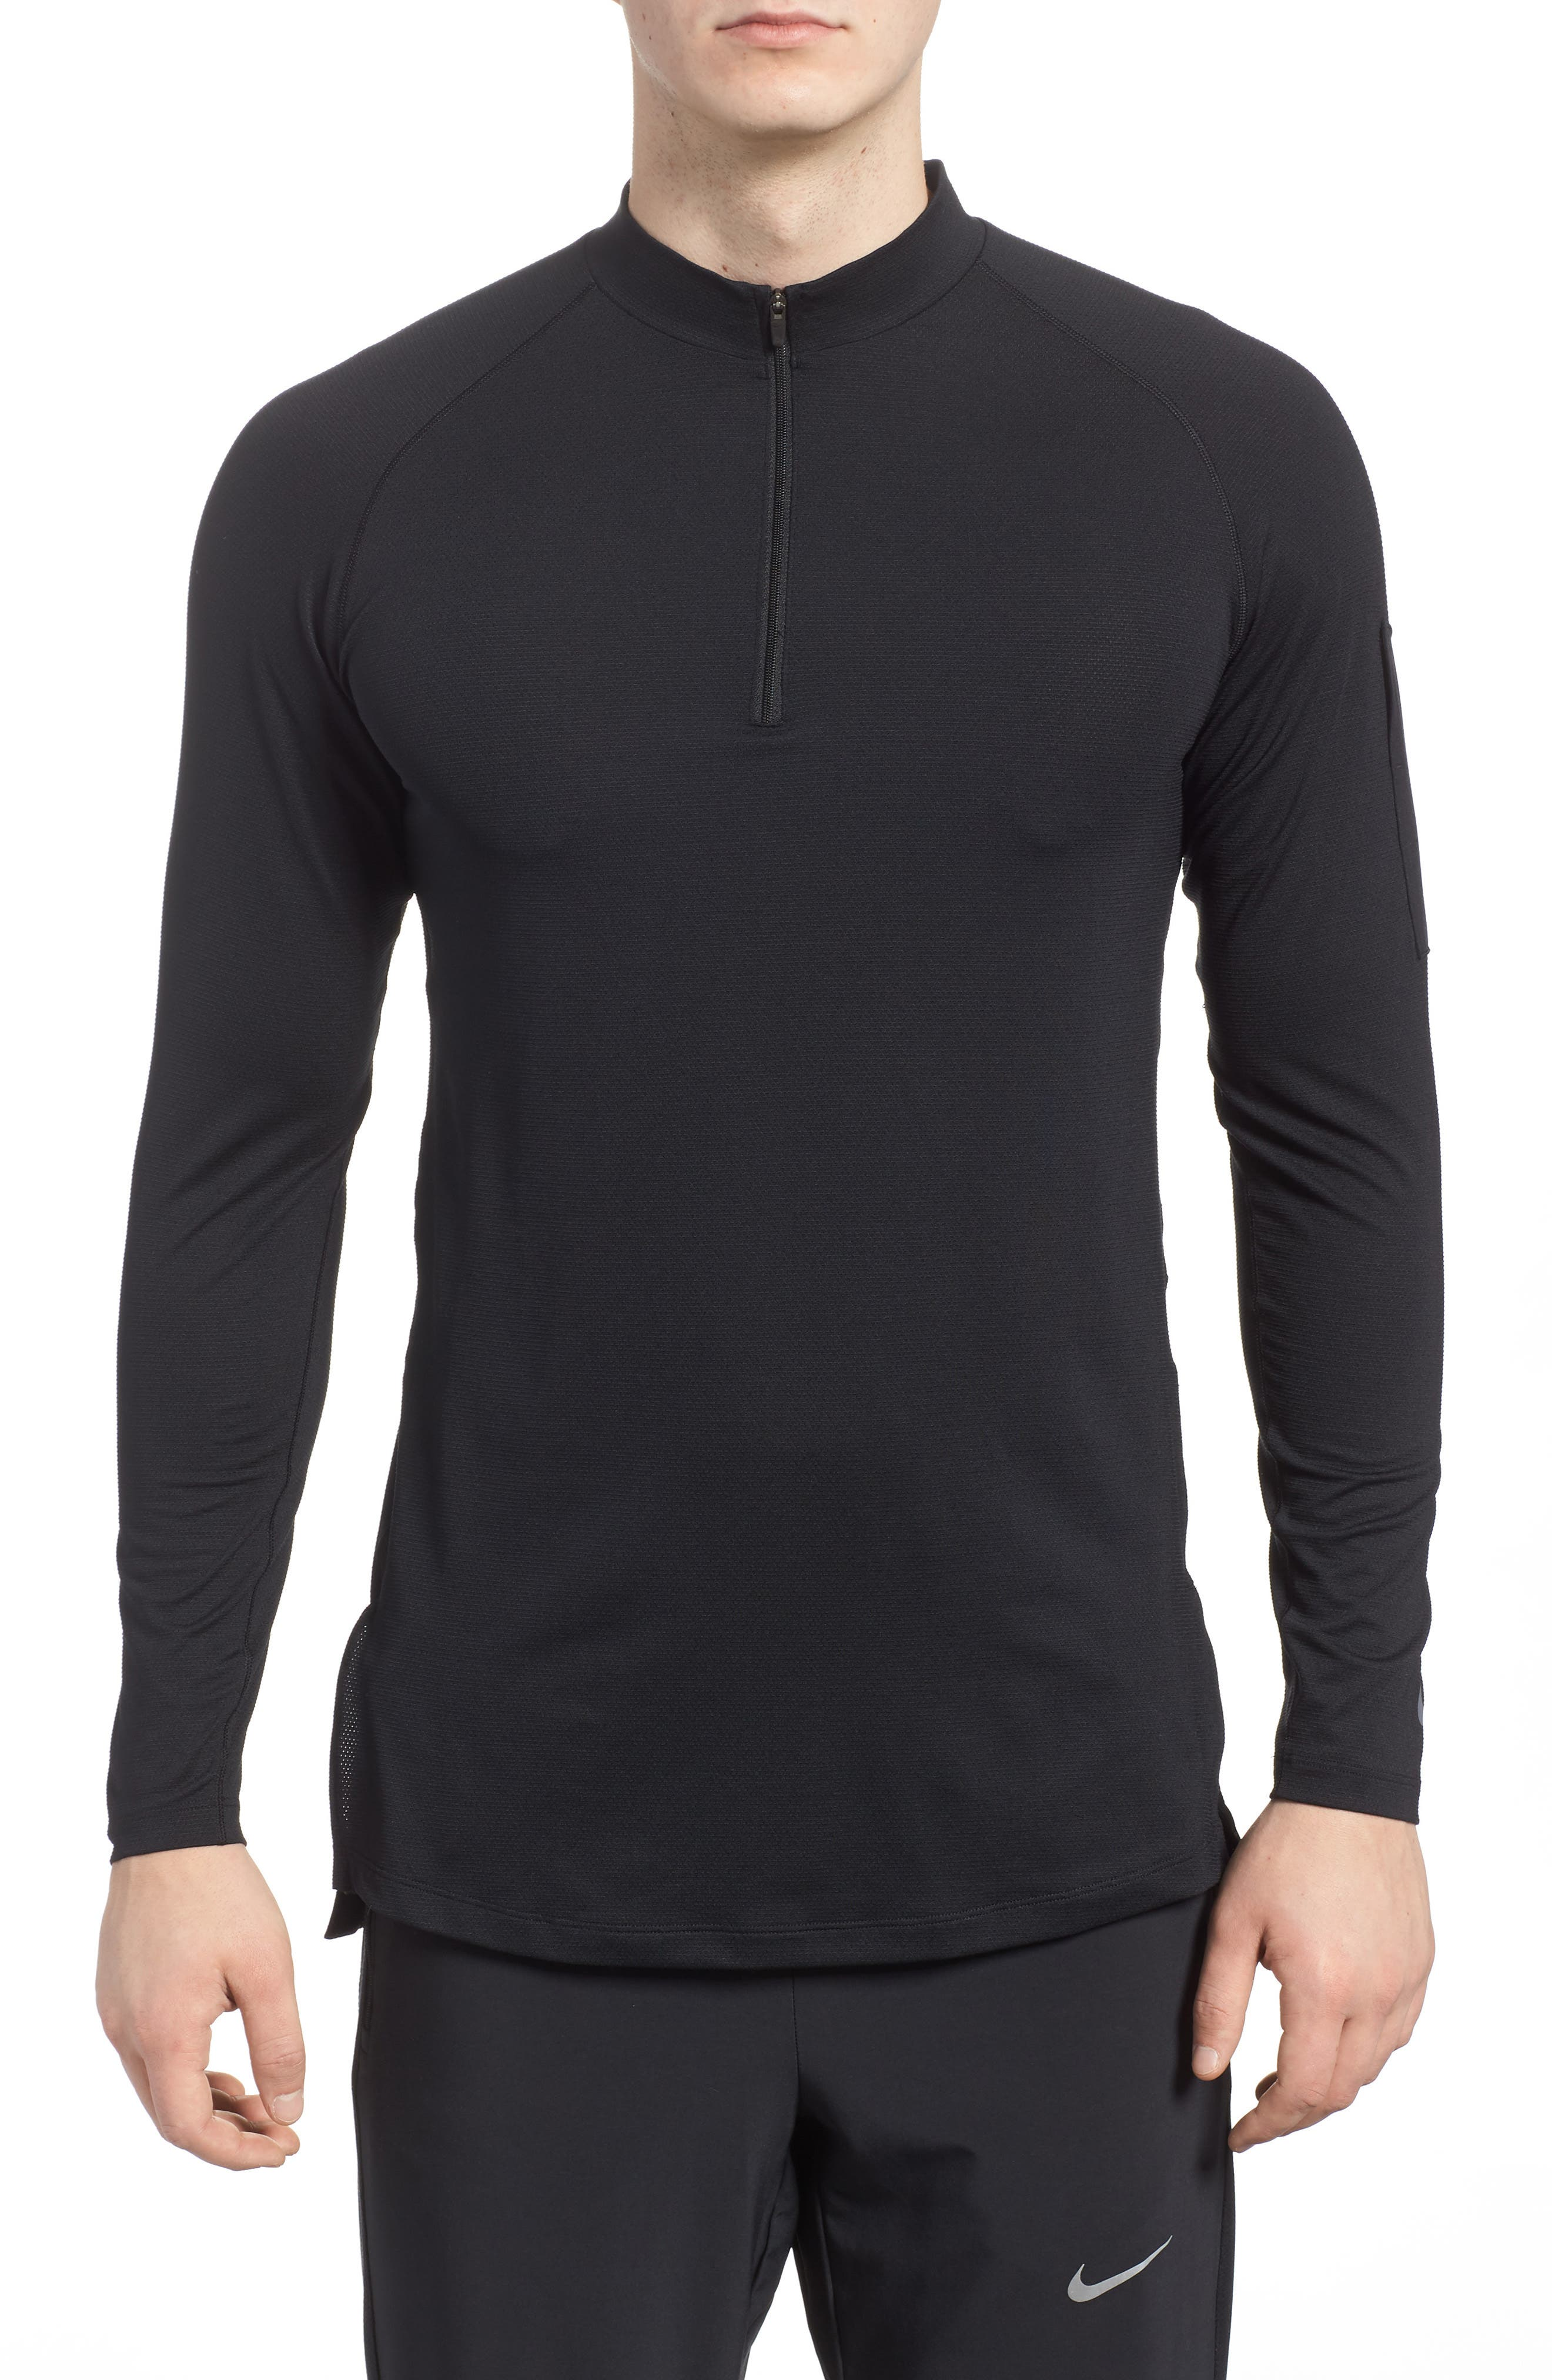 Pro Fitted Utility Dry Tech Sport Top,                         Main,                         color, Black/ Black